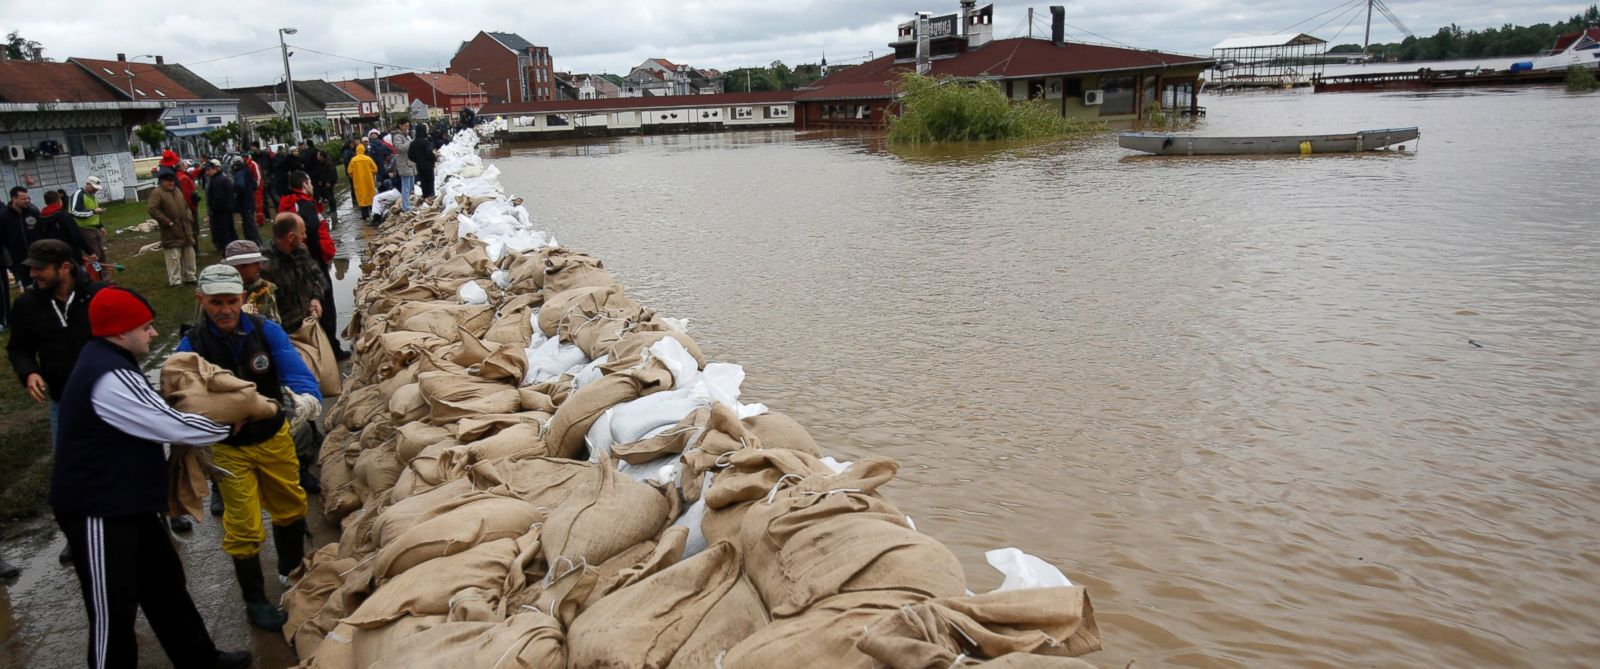 PHOTO: People build a dam made up of sandbags by the bank of the Sava river in Sremska Mitrovica, 90 kilometers west of Belgrade, Serbia, Saturday, May 17, 2014.